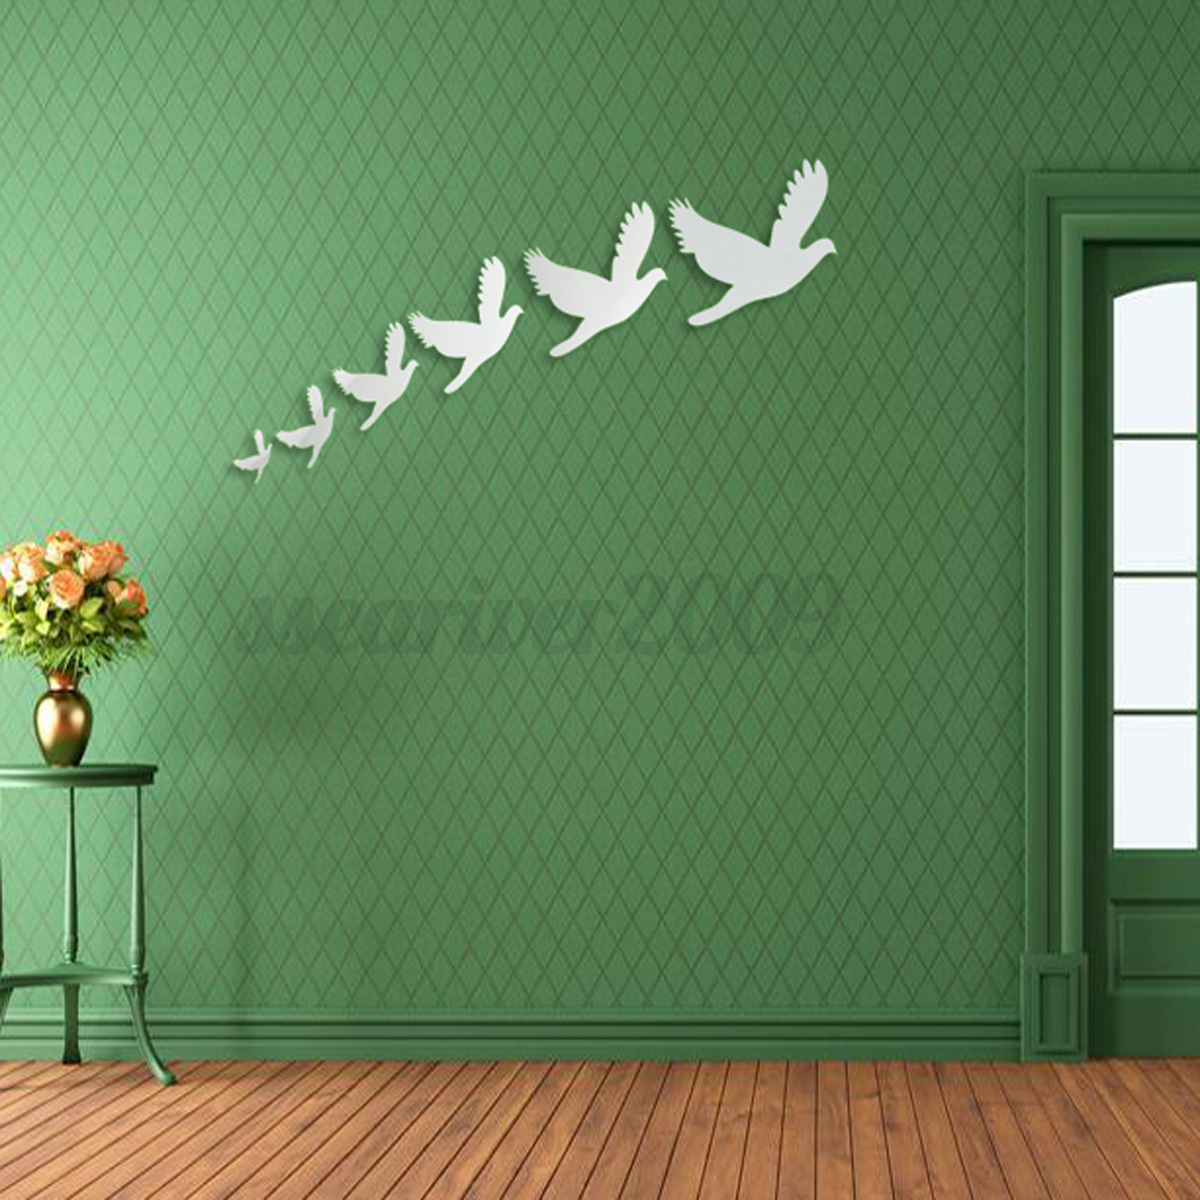 Diy 3d silver mirror surface wall sticker mural decal art for Diy wall mural painting